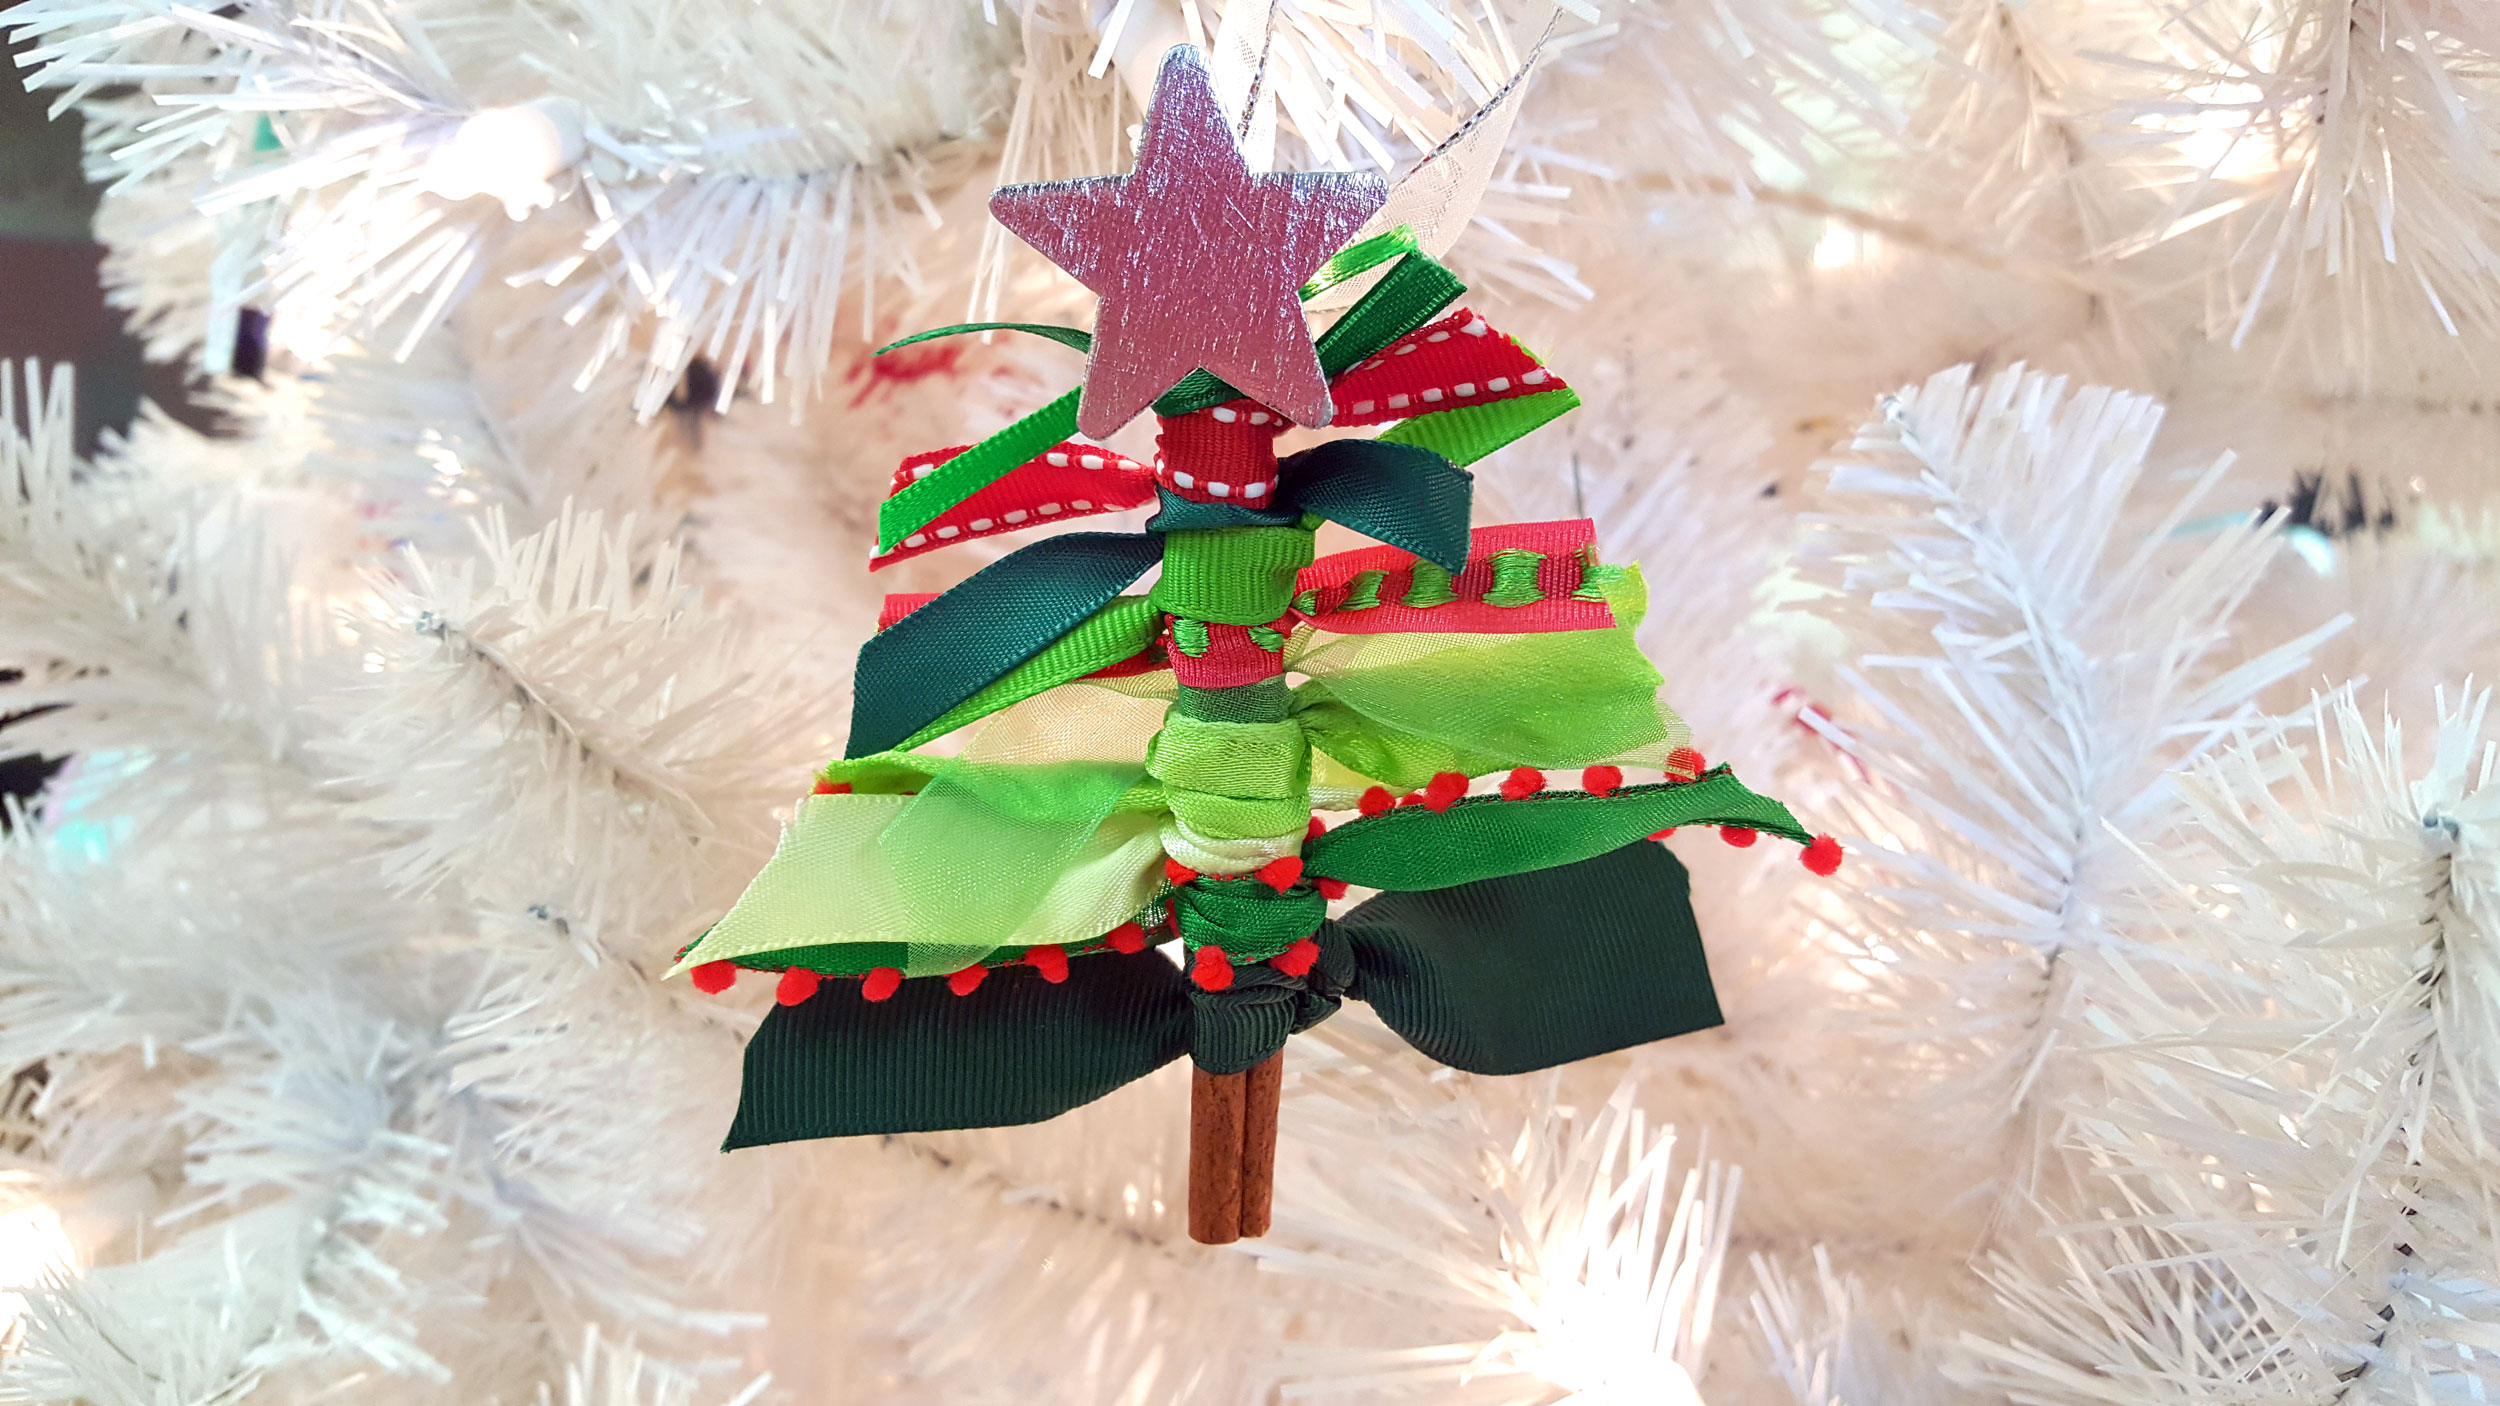 Start A New Family Tradition With Our Ribbon Christmas Tree Ornaments